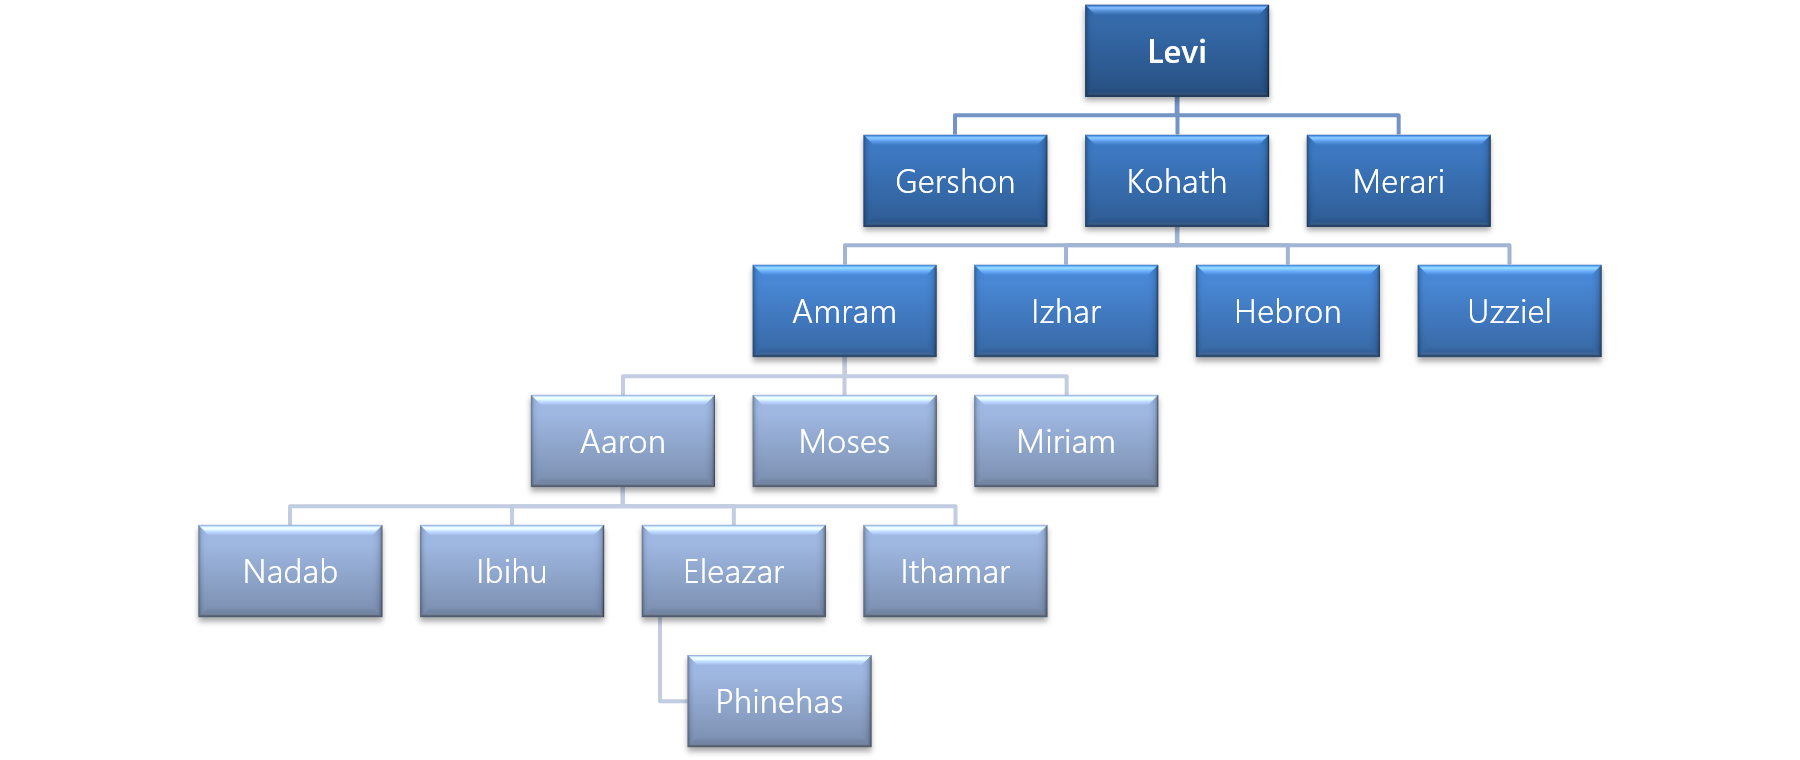 Figure 2 - The Family of Levi